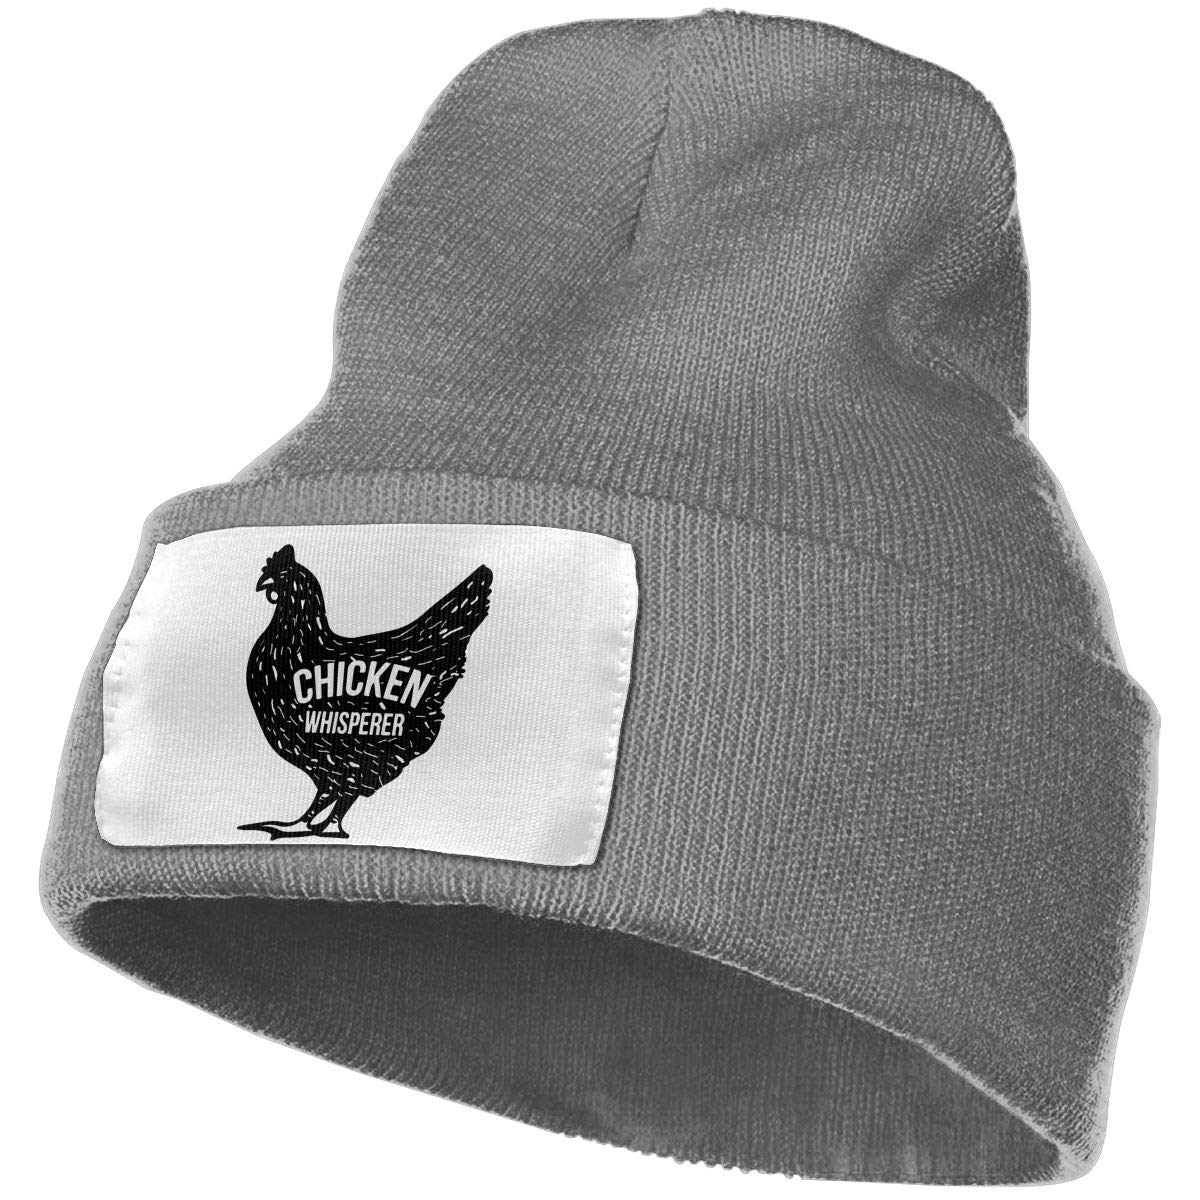 WHOO93@Y Mens and Womens 100/% Acrylic Knitting Hat Cap Chicken Whisperer Thick Skull Cap